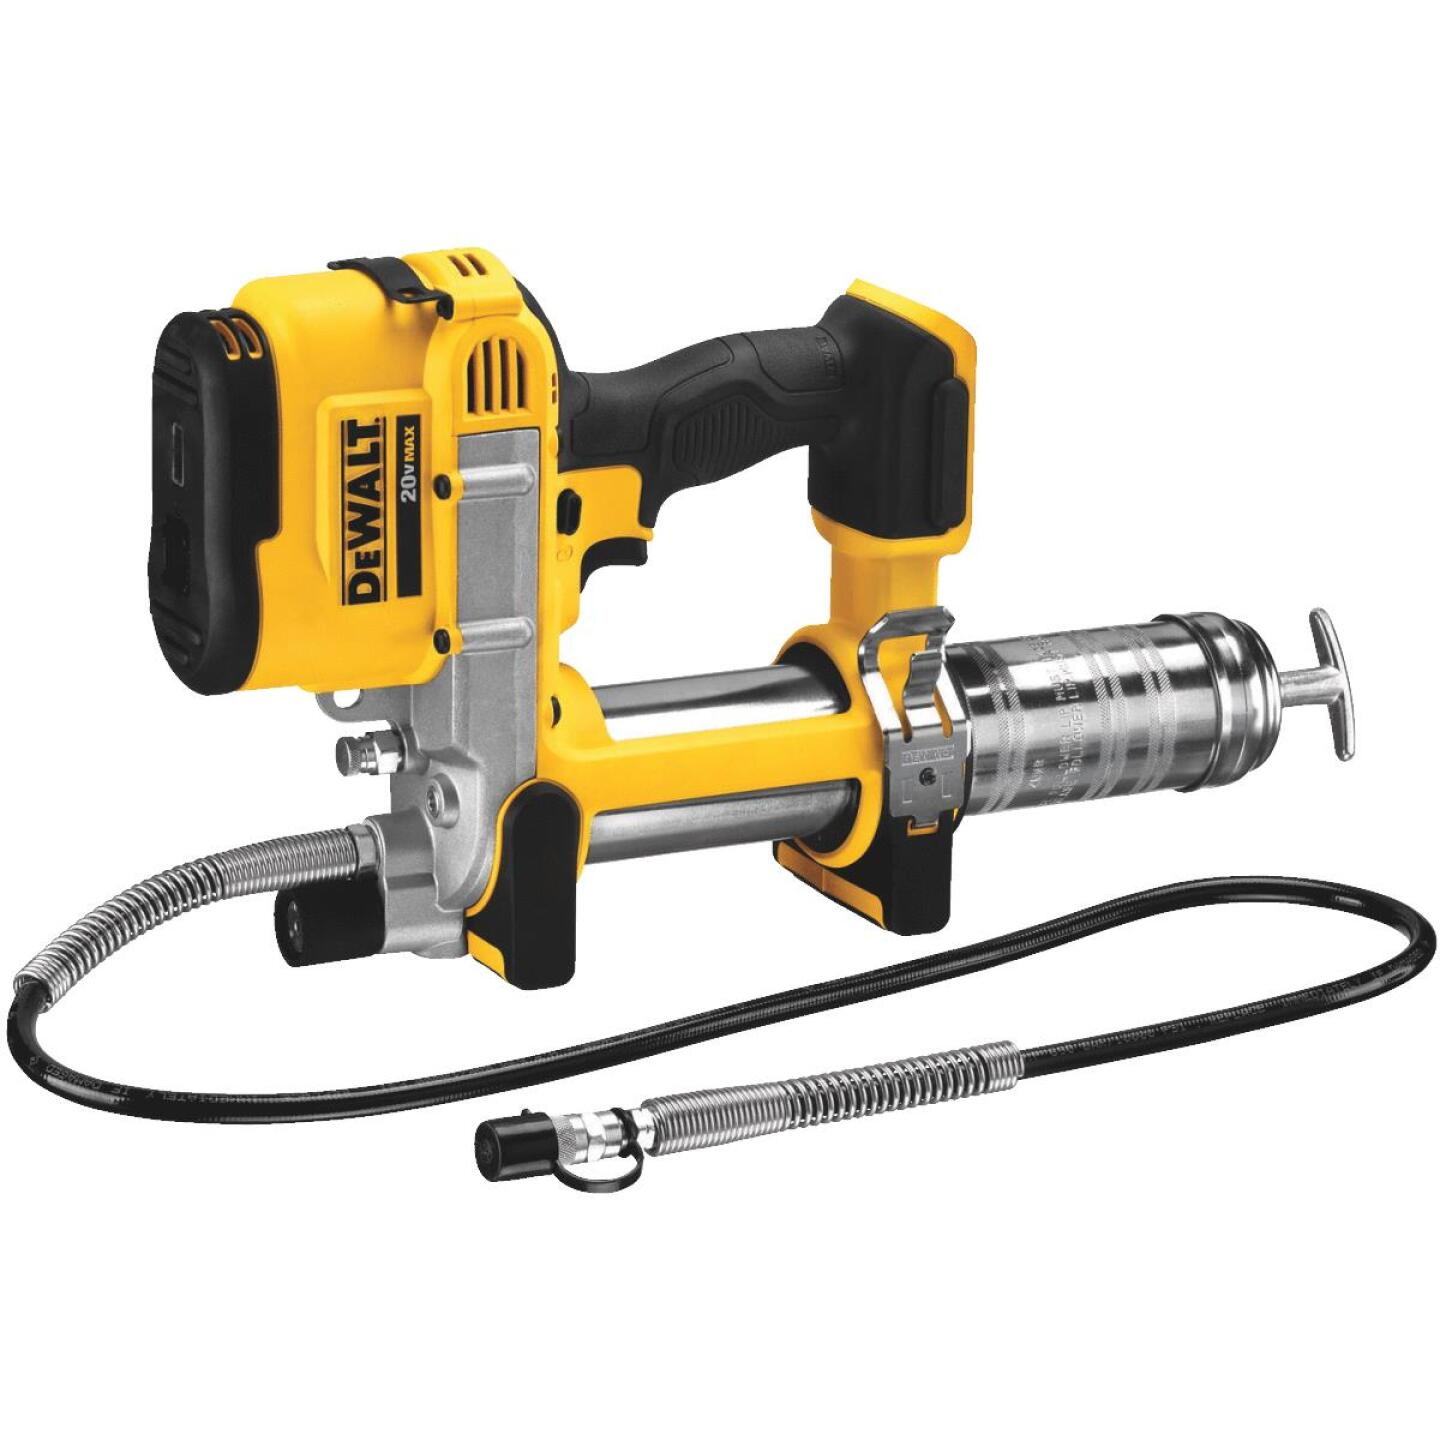 DeWalt 20 Volt MAX Lithium-Ion Cordless Grease Gun (Bare Tool) Image 1